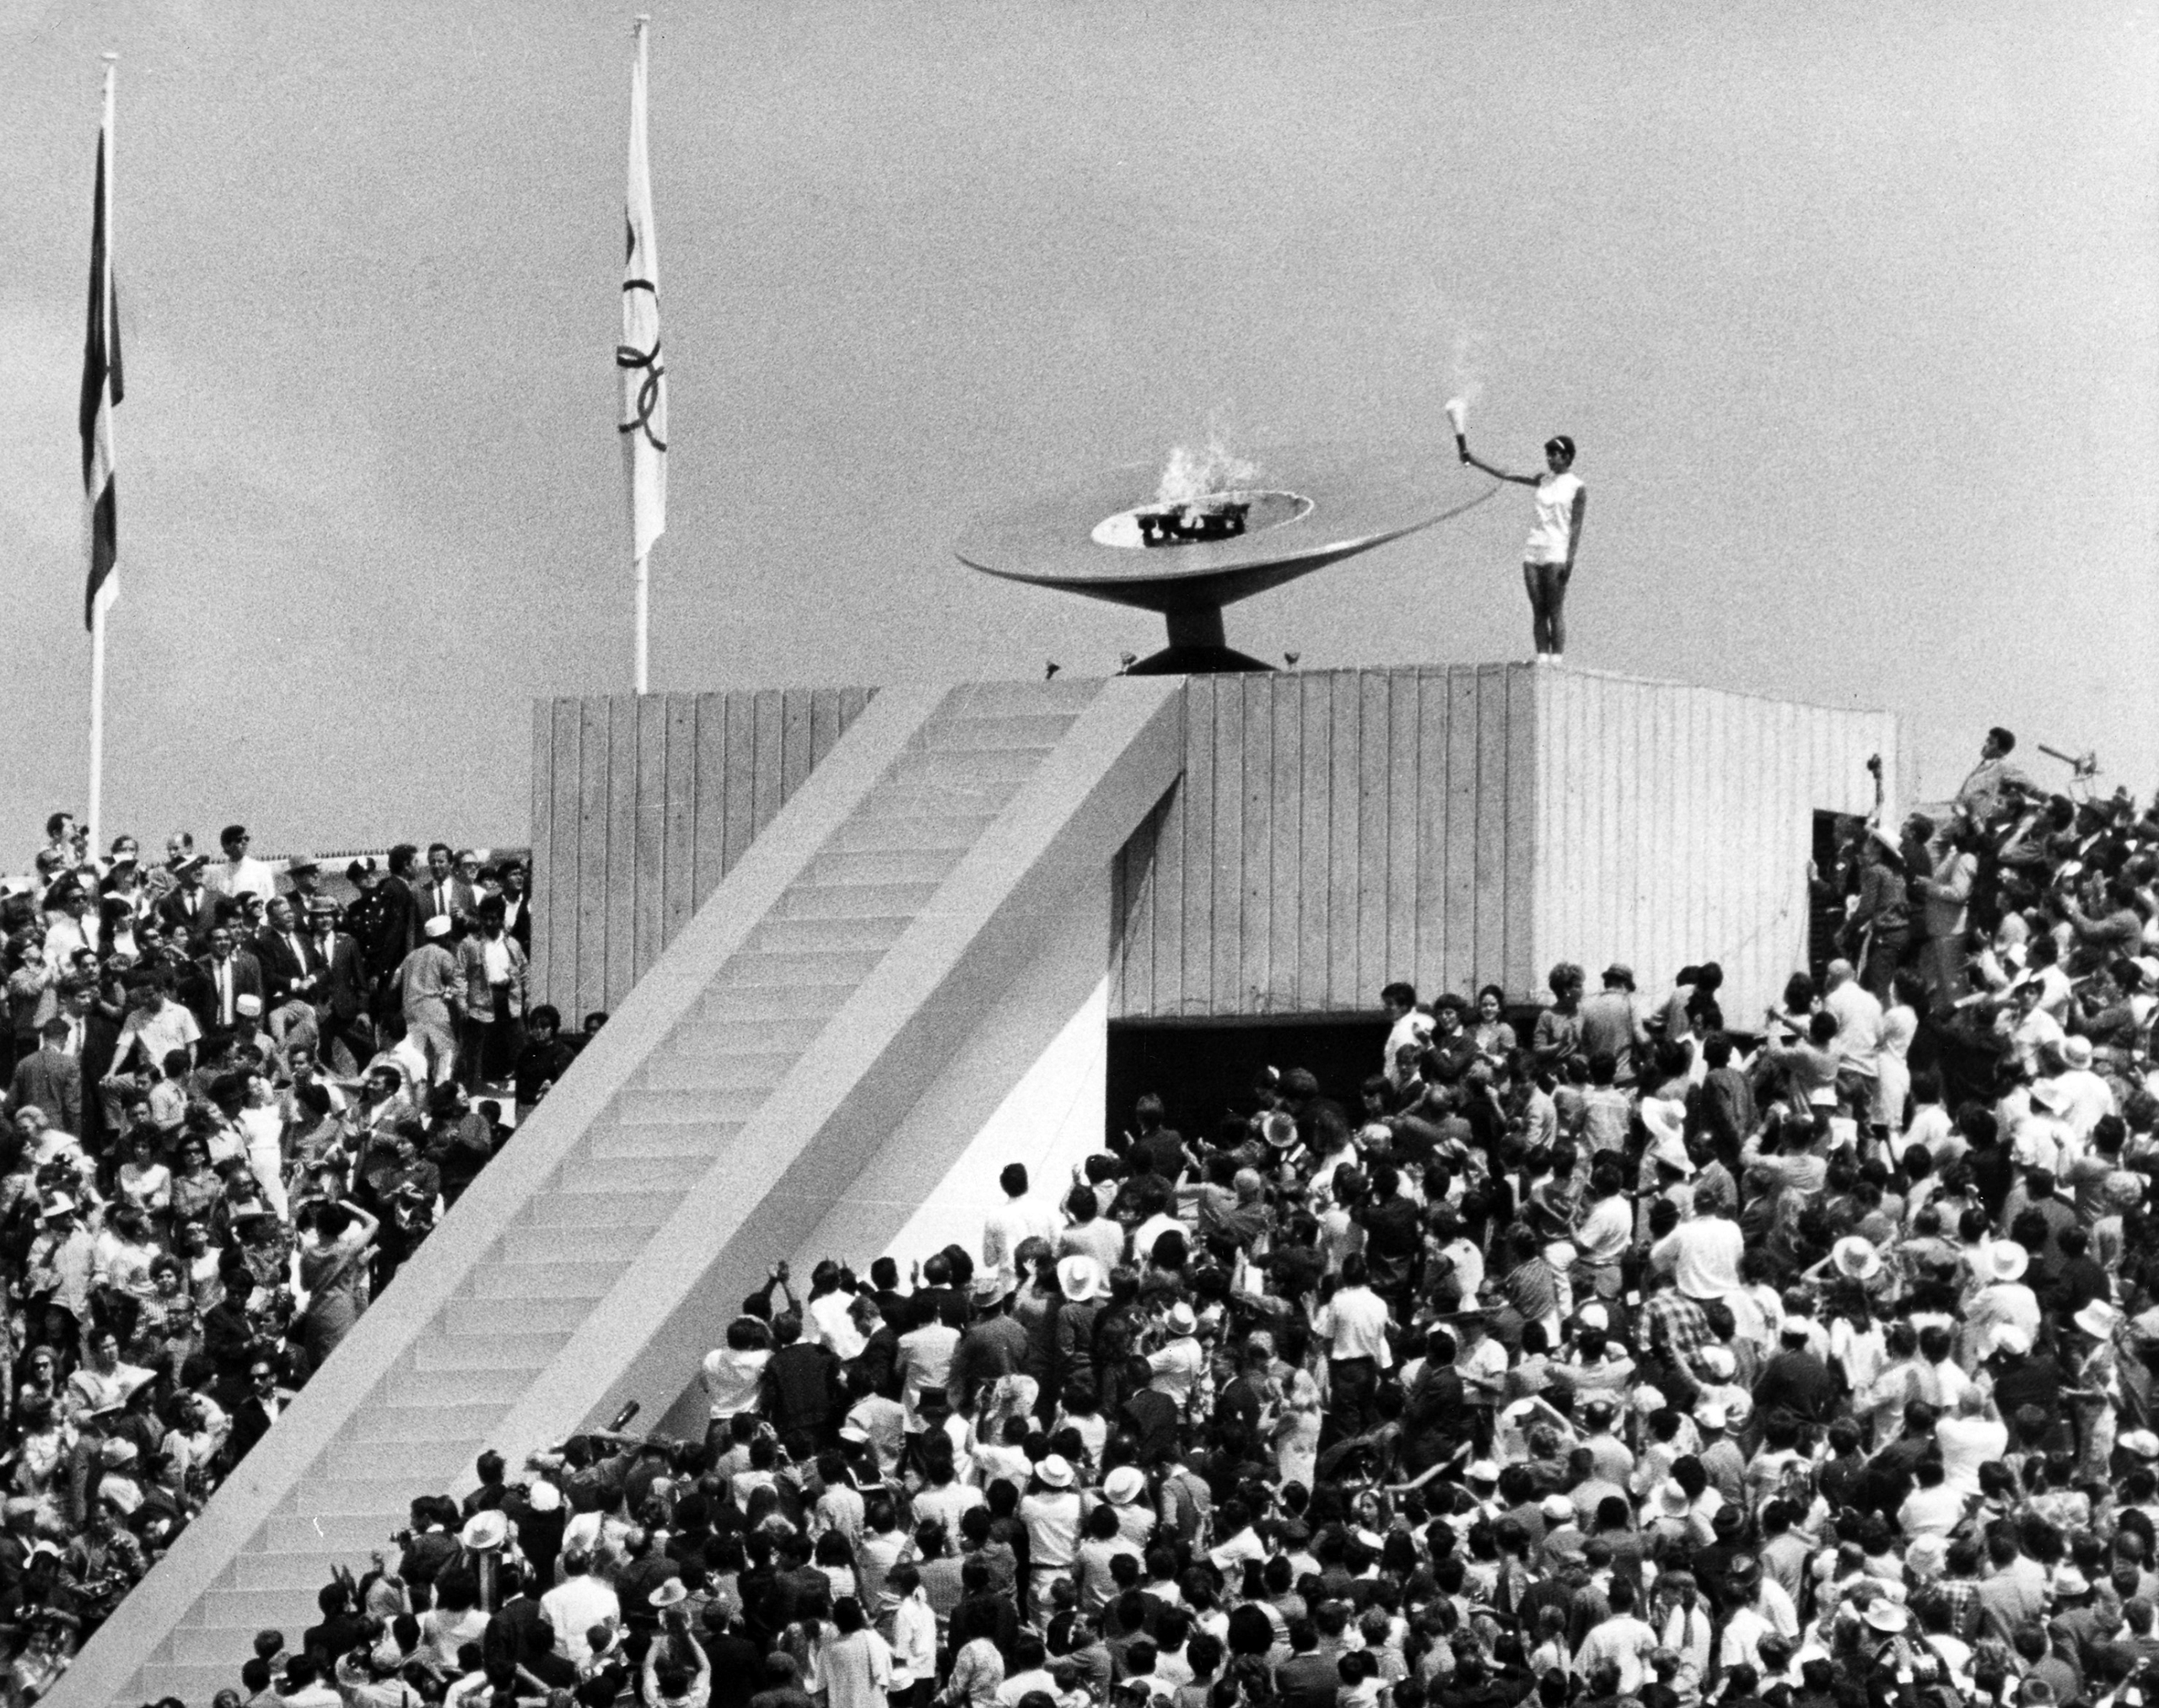 Mexican athlete Norma Enriqueta Basilio last carrier of the Olympic torch is pictured a moment after lighting the Olympic Cauldron, during the opening of the 19th Olympic games in Mexico City, Mexico, Oct. 12, 1968.